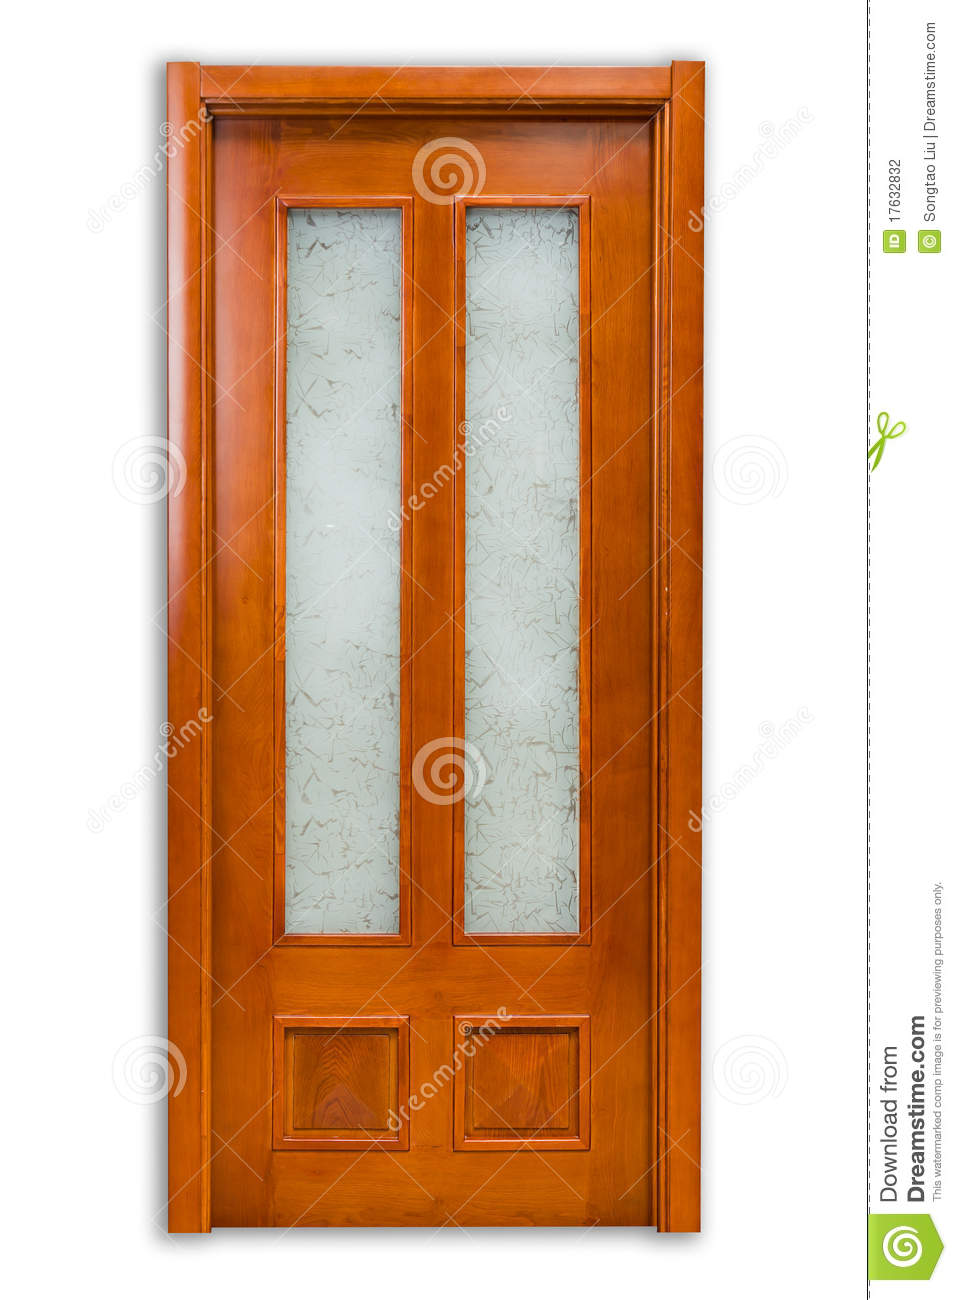 solid wood door stock photography image 17632832